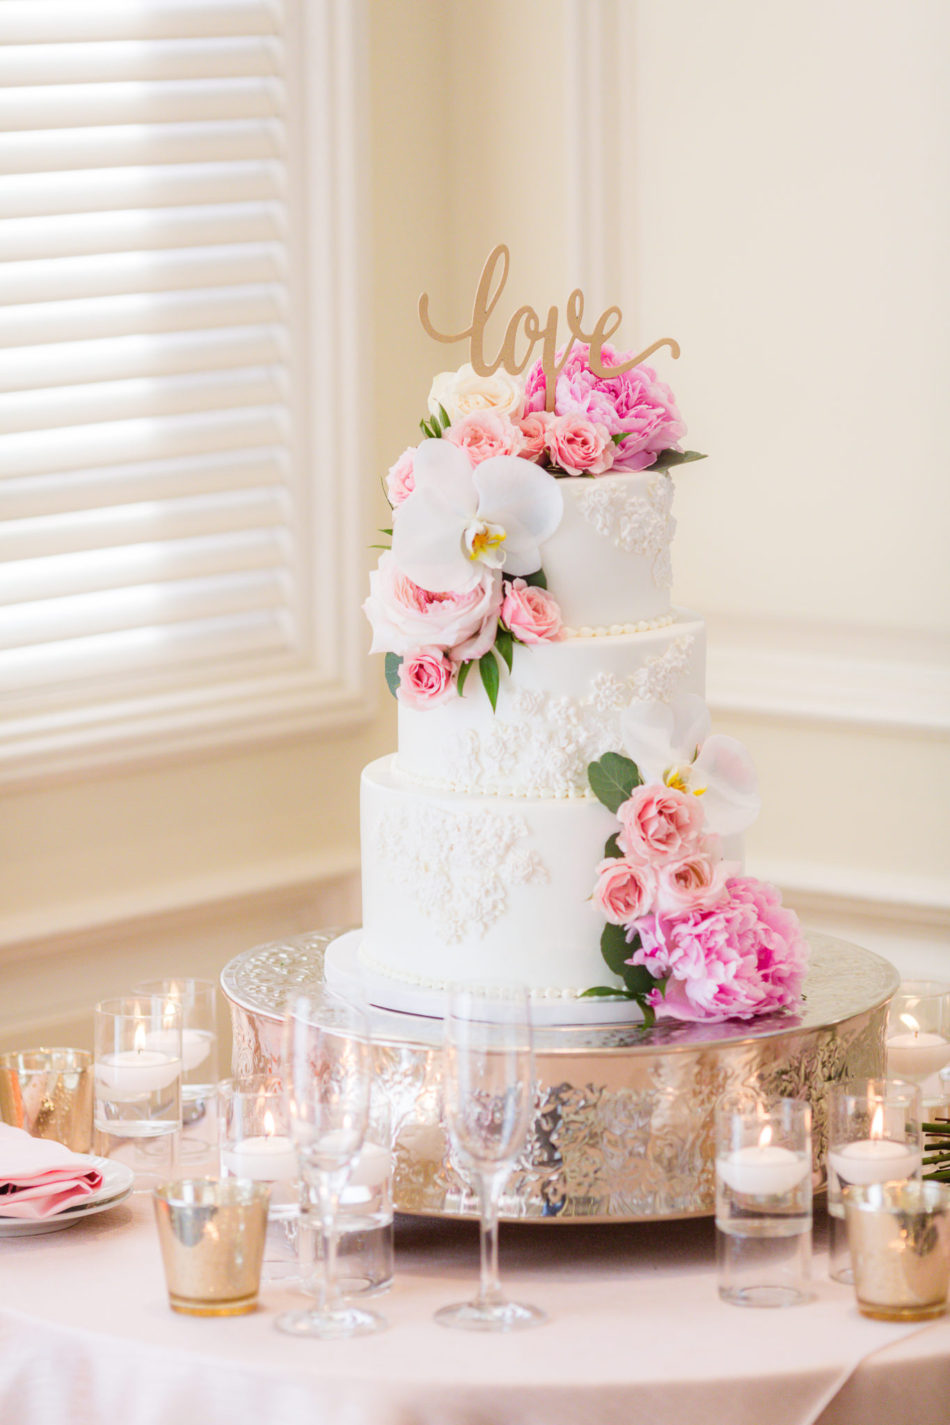 pink cake decor, pink cake, pink wedding cake, floral design, florist, wedding florist, wedding flowers, orange county weddings, orange county wedding florist, orange county florist, orange county floral design, flowers by cina